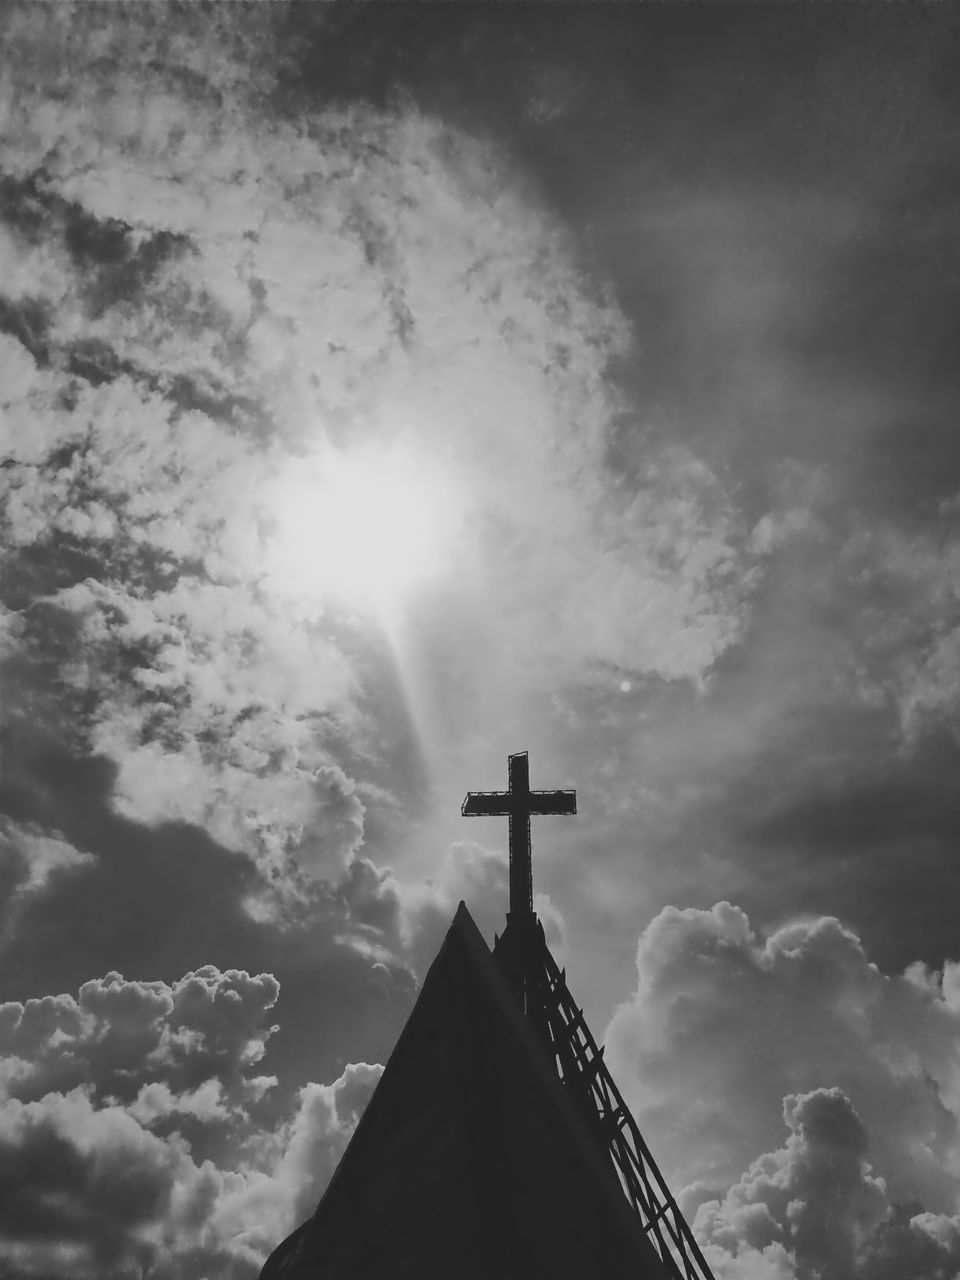 Low Angle View Of Building And Cross Against Cloudy Sky